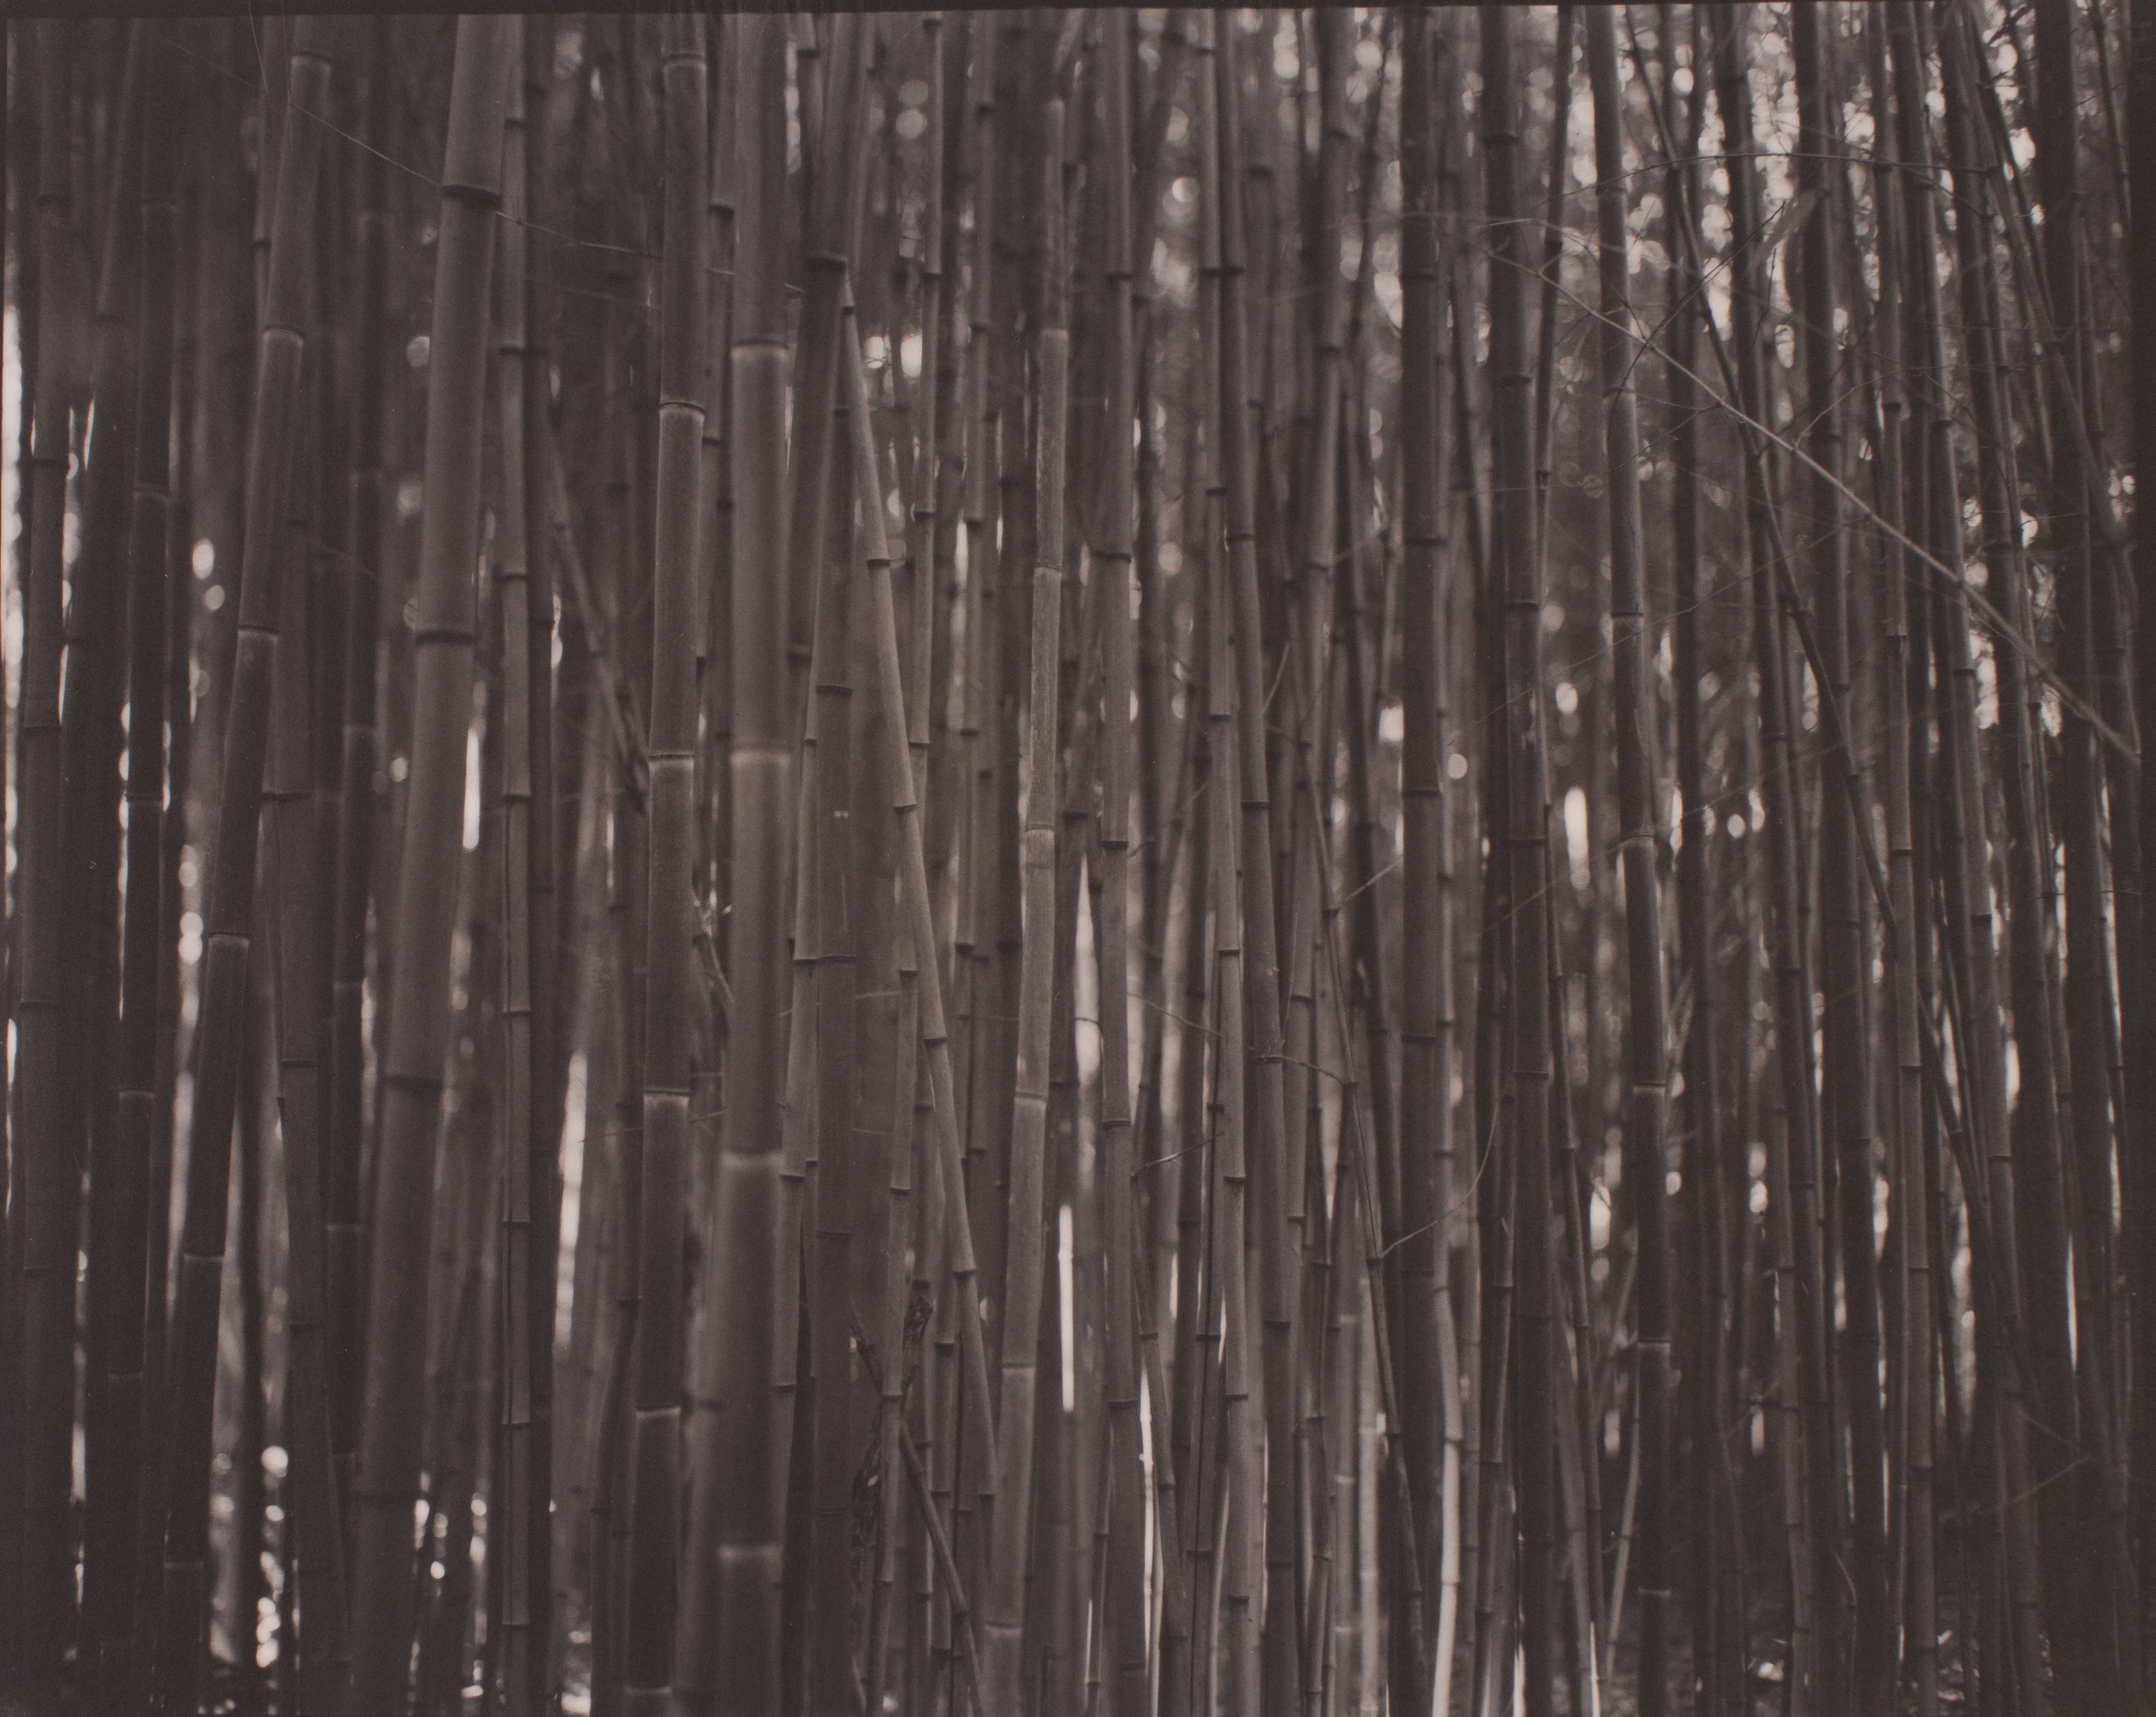 bamboo   July 2015 Sewanee, TN  scan of platinum-palladium print from original 8X10 photographic negative on Reich CT Vellum, dry mounted on archival mat board